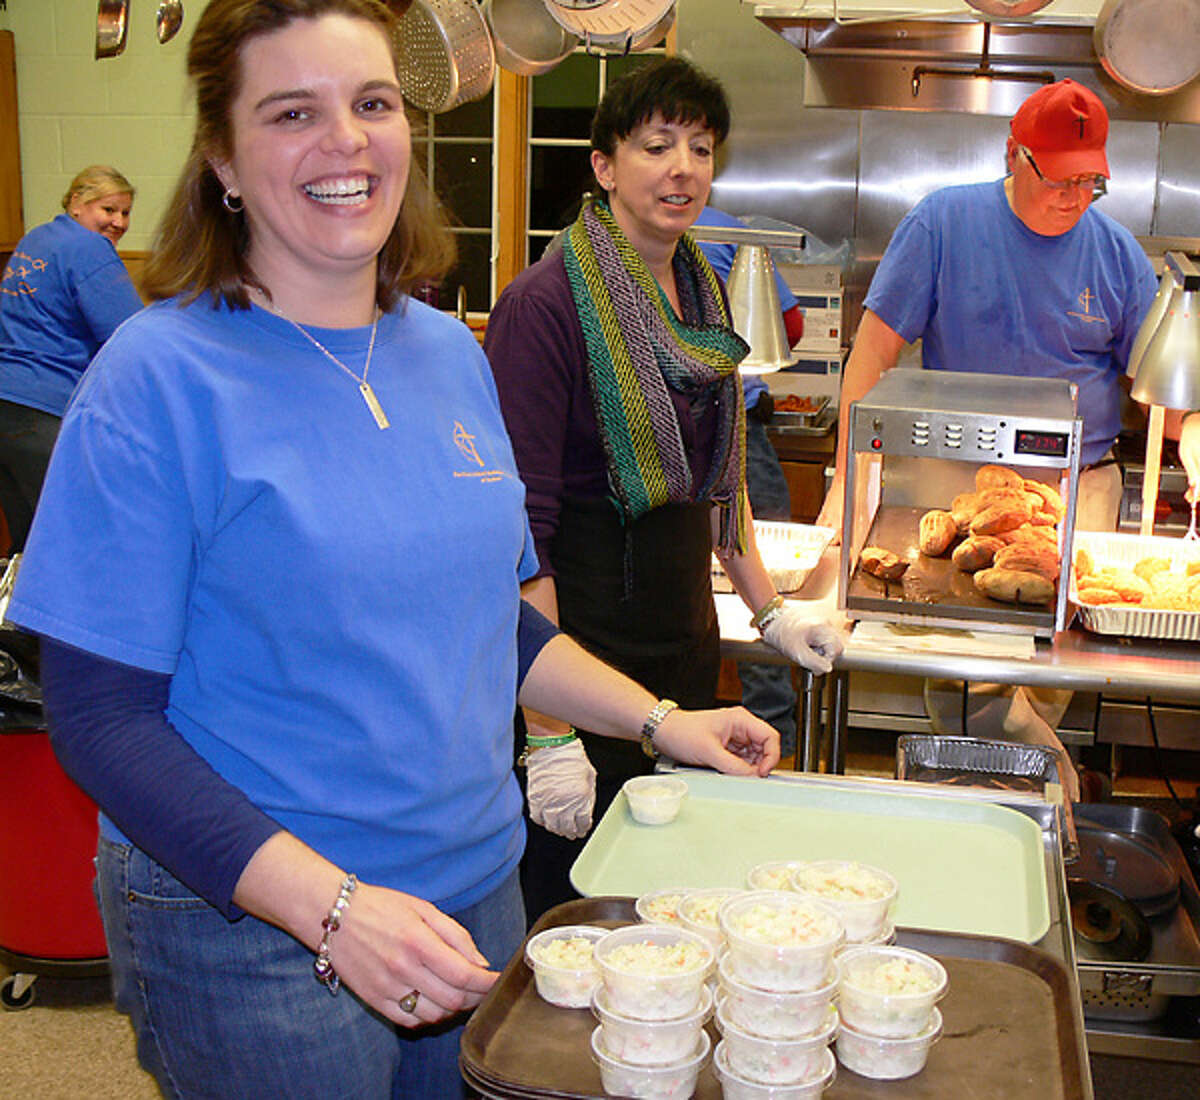 At a previous fish fry, the Rev. Heather Sinclair checks out the kitchen but spent much of her time interacting with guests in the dining room.